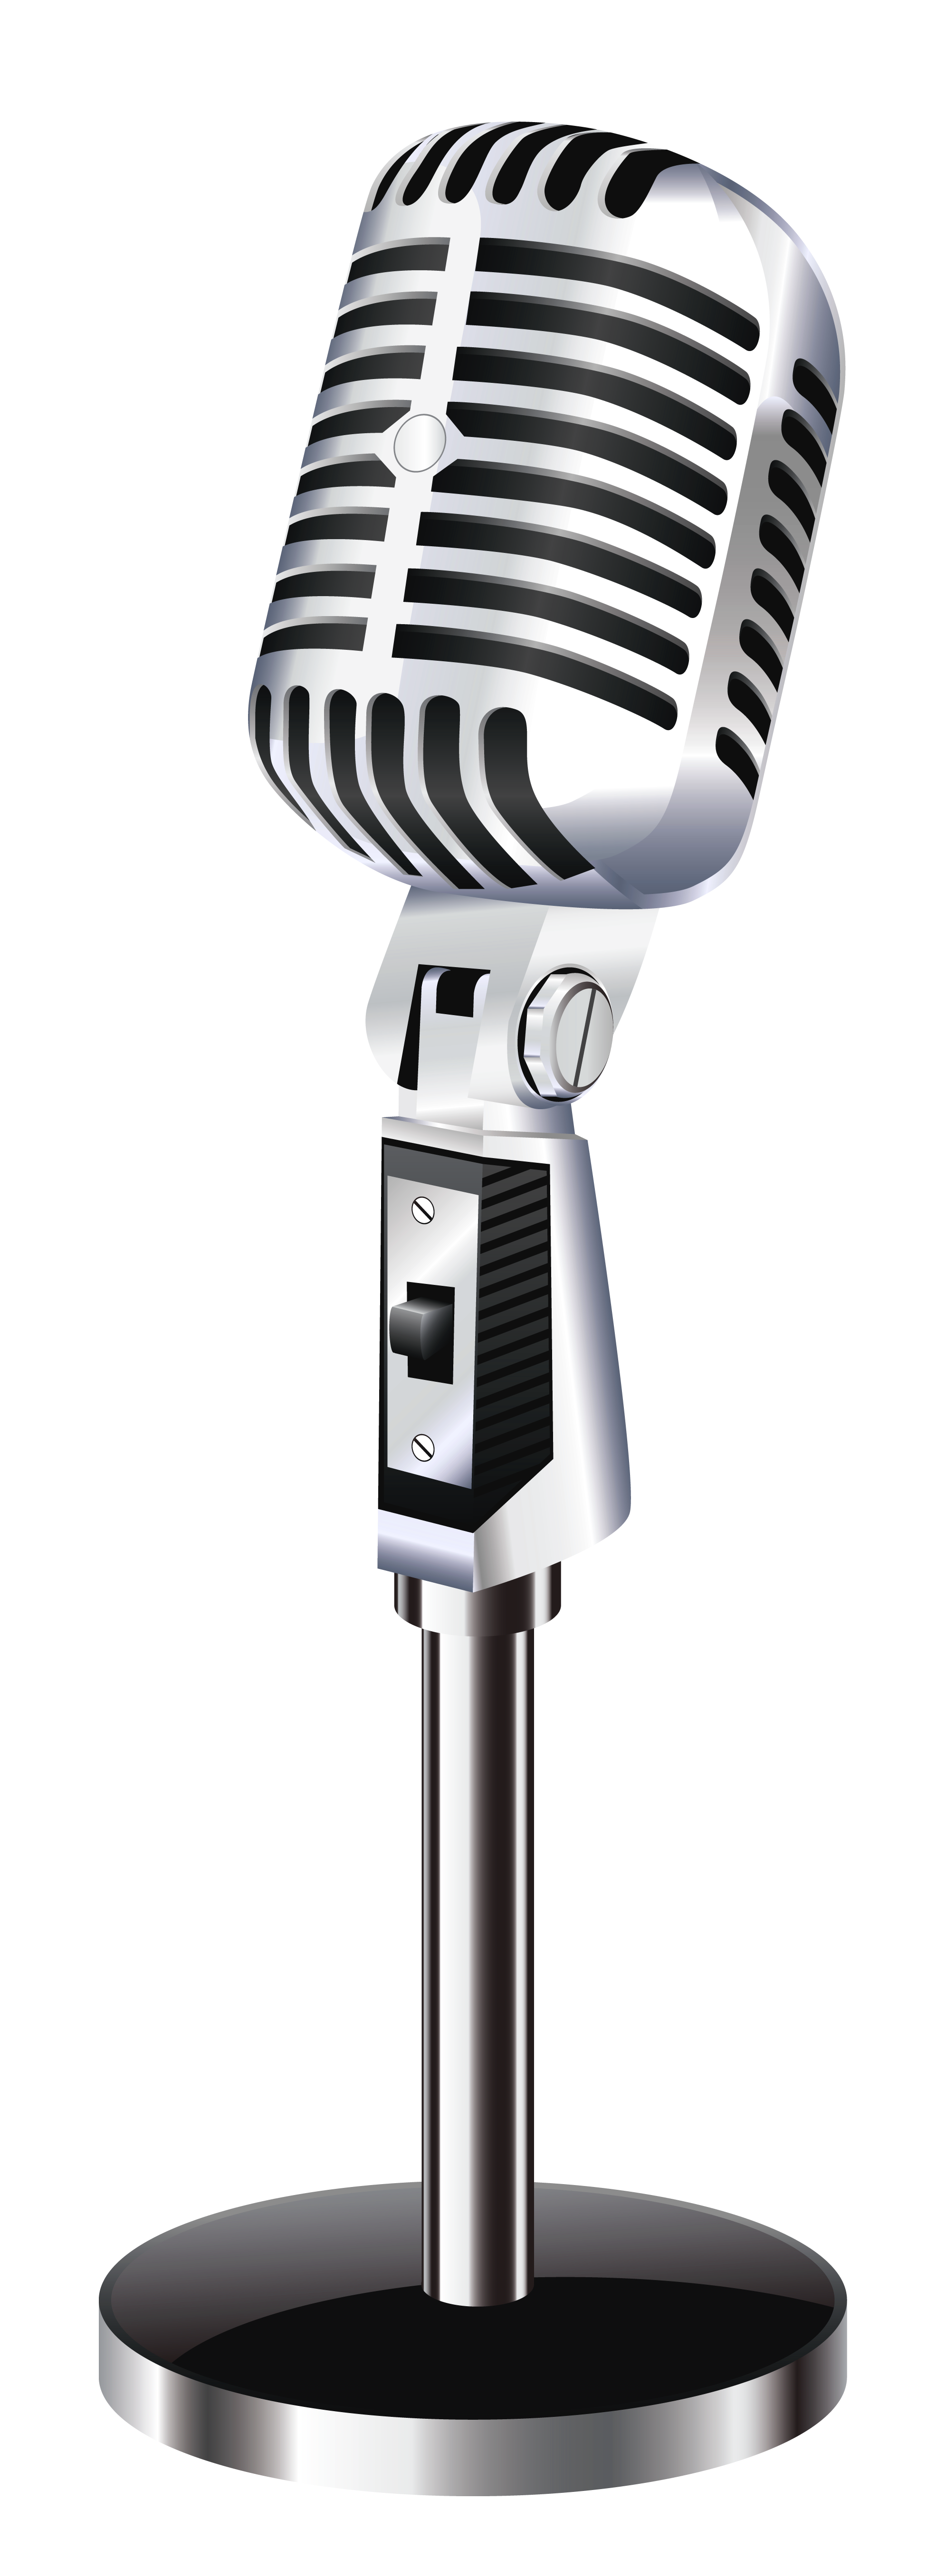 PNG images: Microphone - Microphone HD PNG